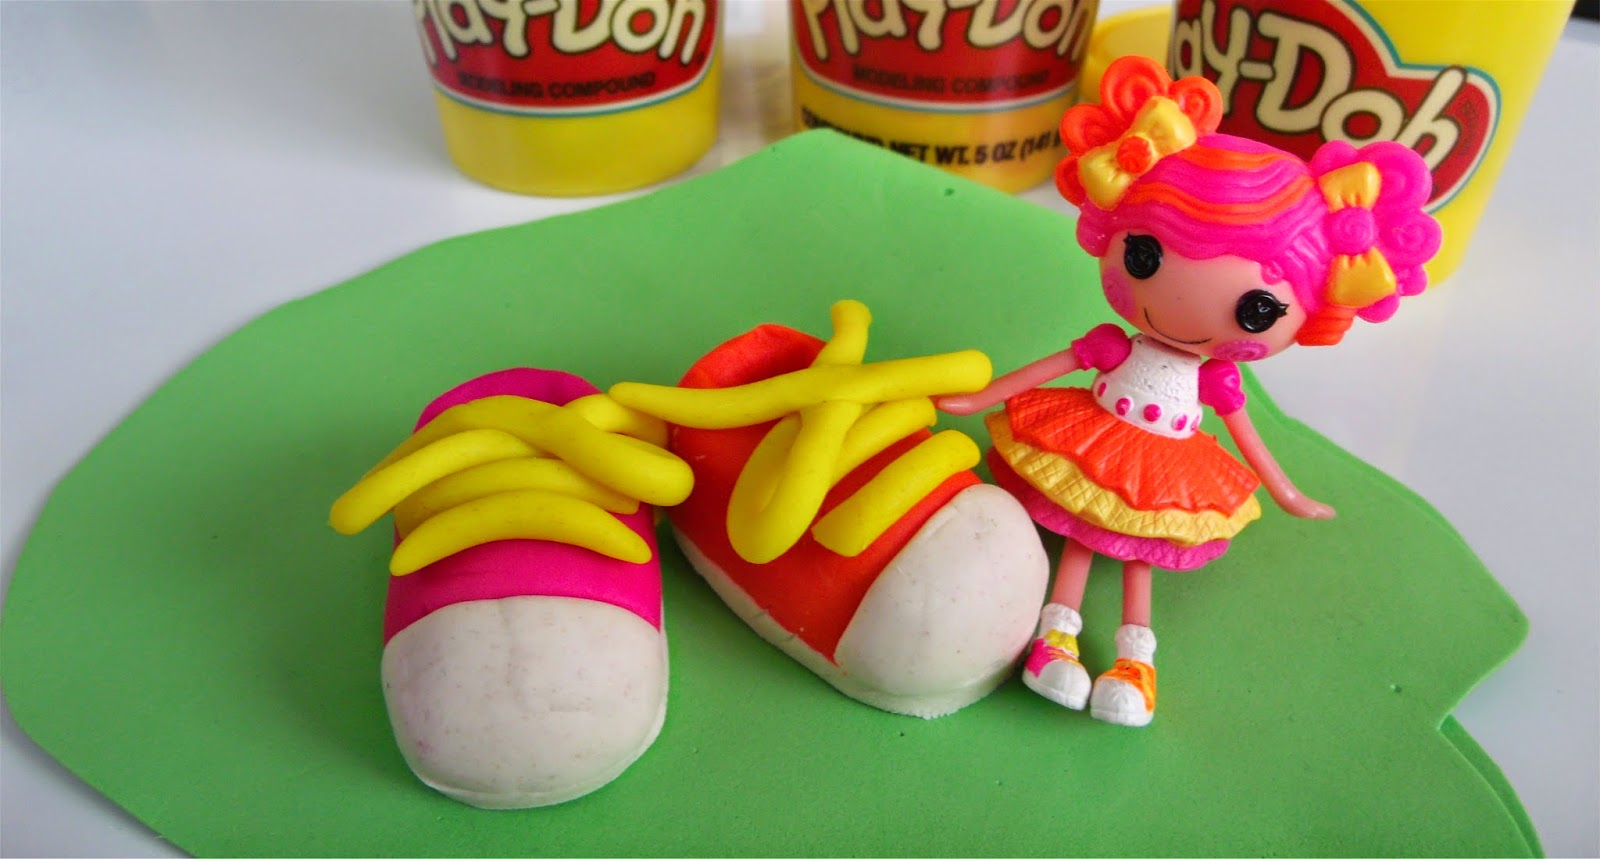 Lalaloopsy's giant Play Doh Tennis Shoes